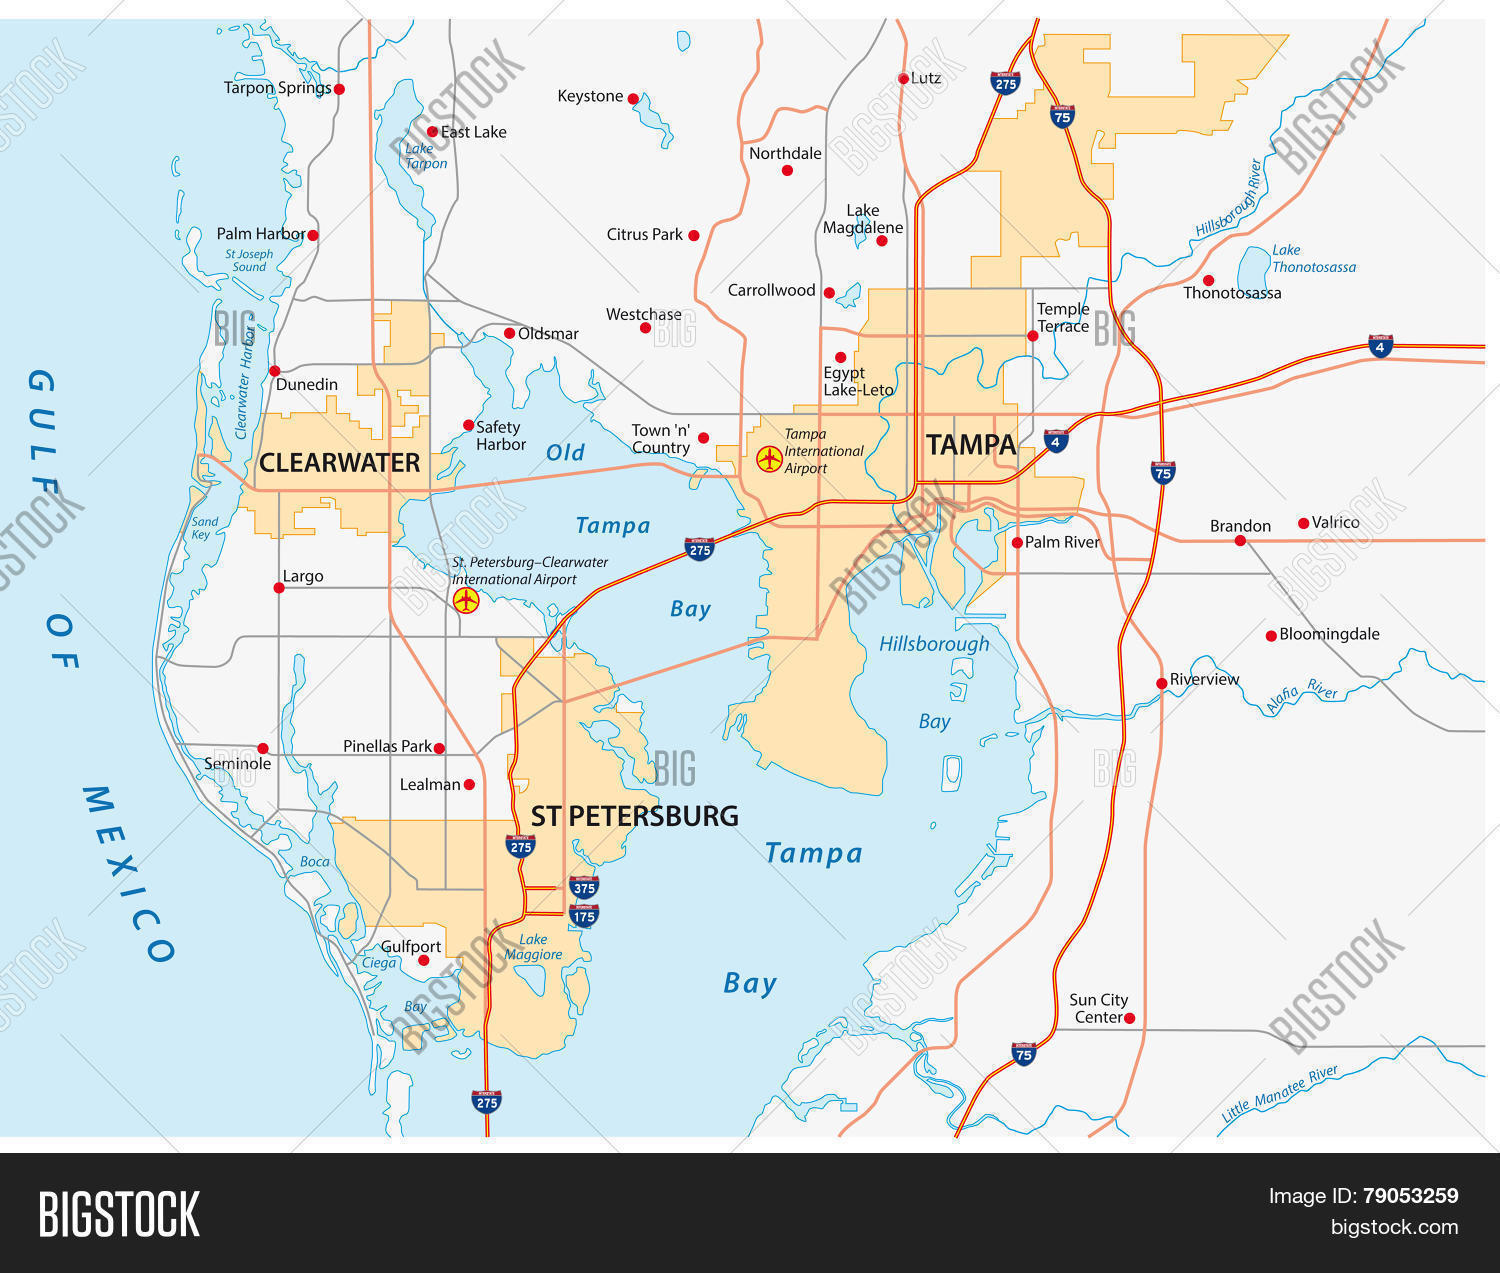 Tampa Bay Area Map Vector & Photo (Free Trial) | Bigstock